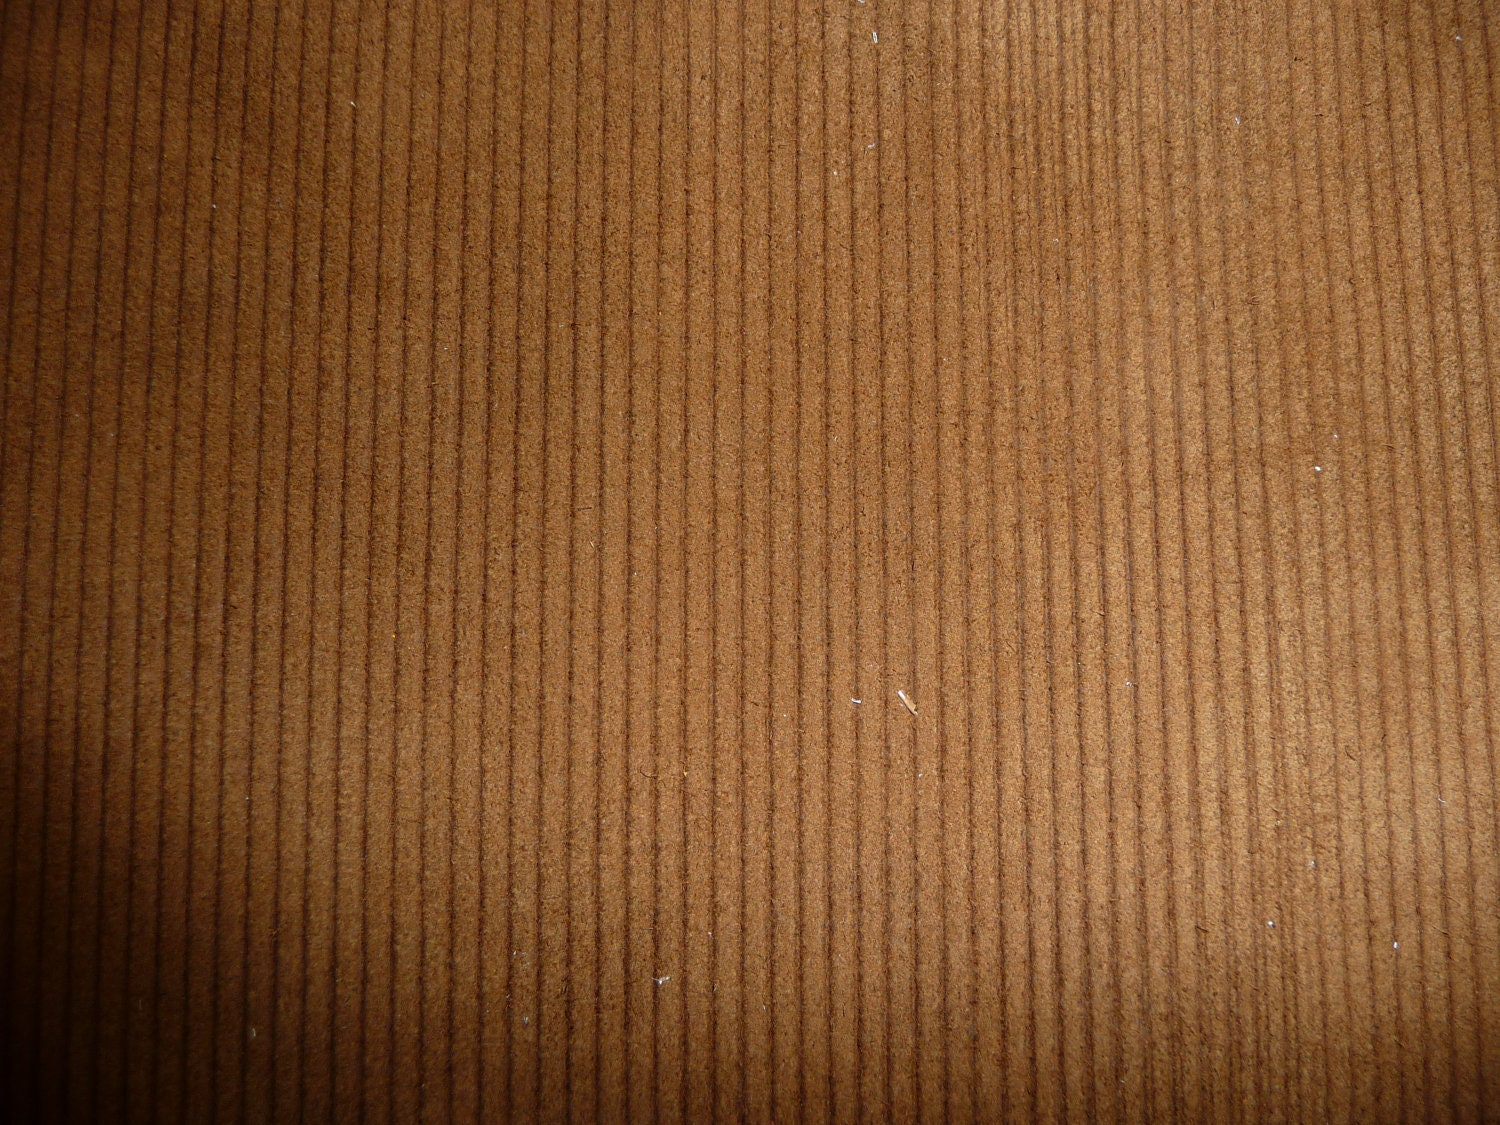 "Corduroy is the quintessential cool-weather fabric and comes in a variety of weights and colors. The width of the cord is commonly referred to as the size of the ""wale,"" or number of cords per inch. The lower the wale number, the thicker the width of the wale (i.e. 4-wale is much thicker than wale)."